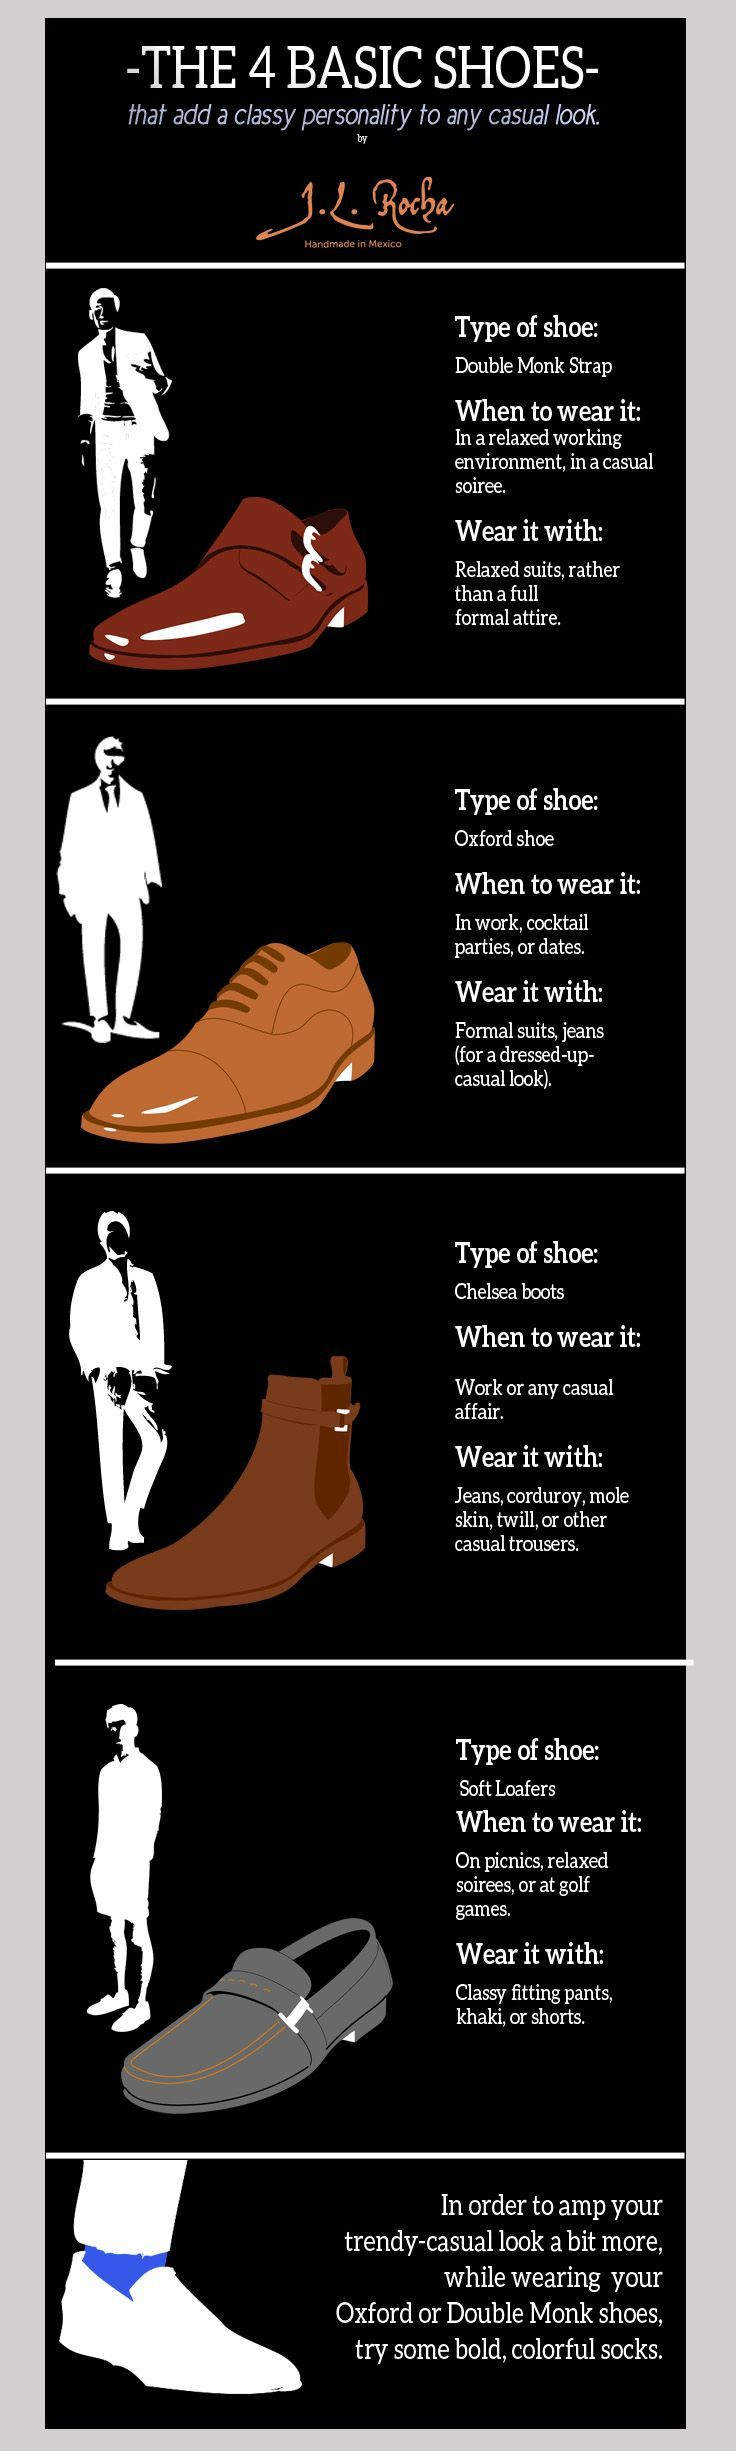 A guide to choosing the appropriate men's shoes. #mensgrooming #menstyle #shoes